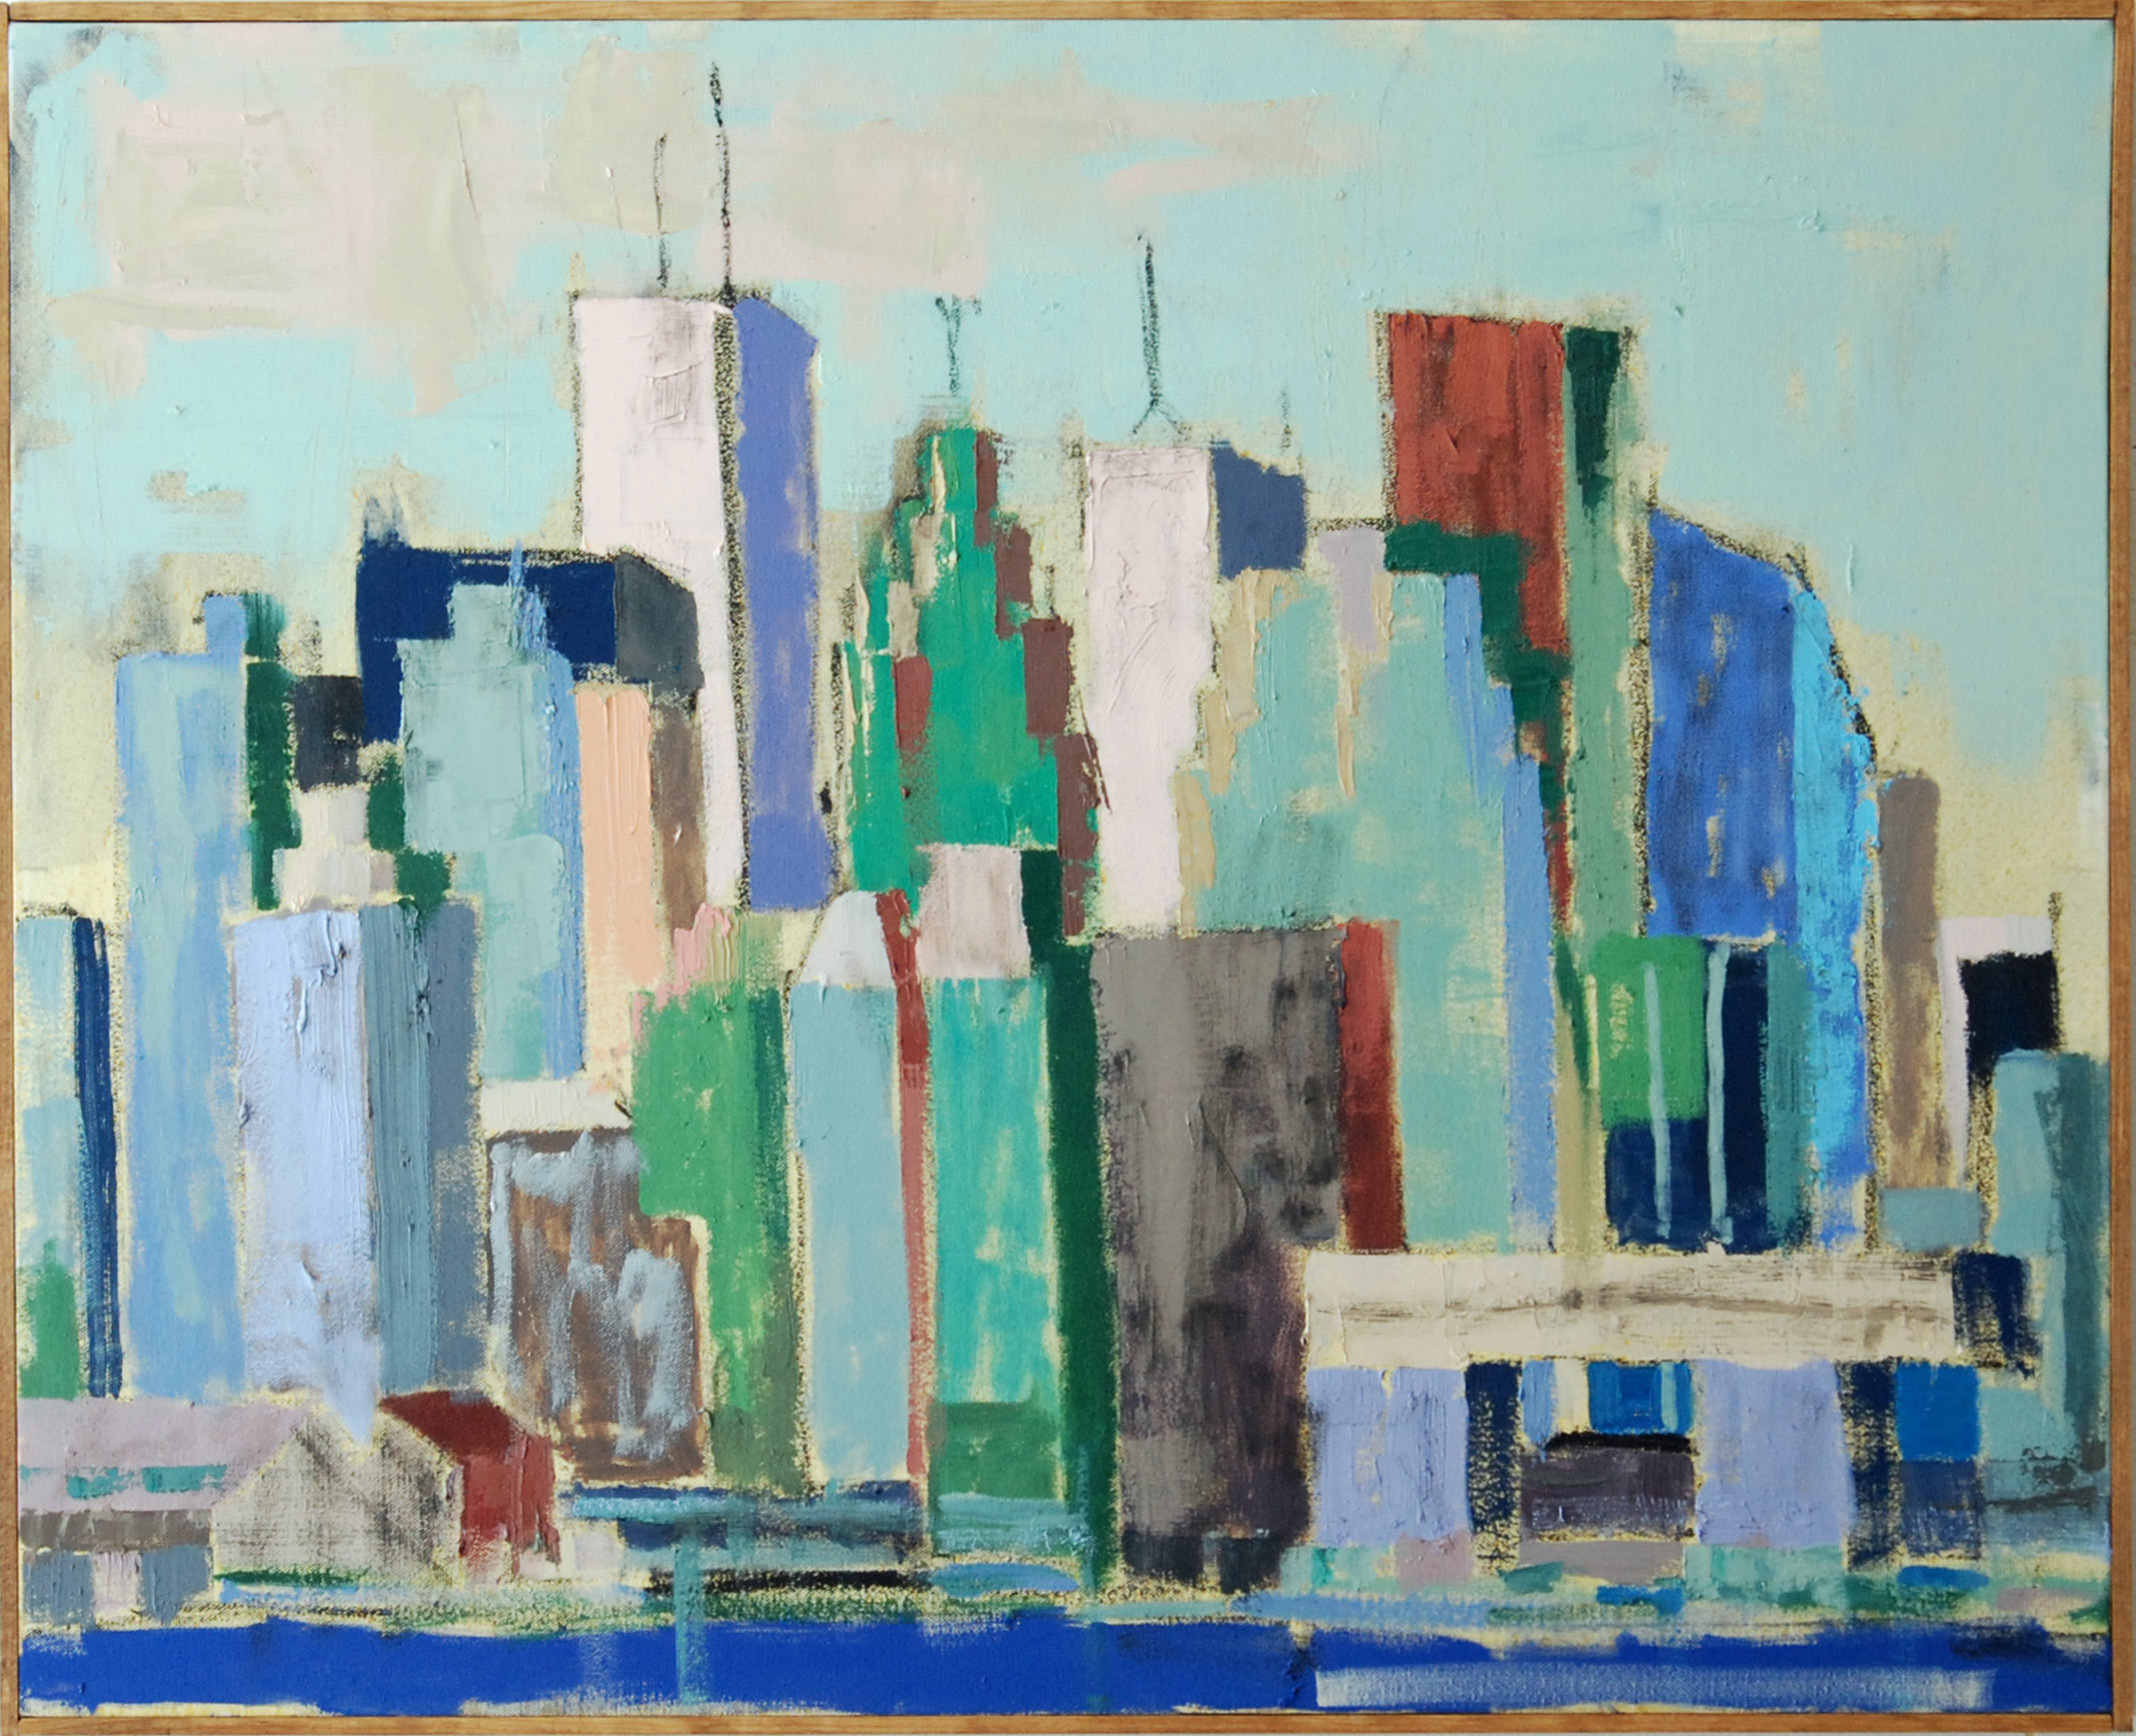 Skylne South, 2019. 30.75 x 24.5 inches, oil on canvas. Private Collection.